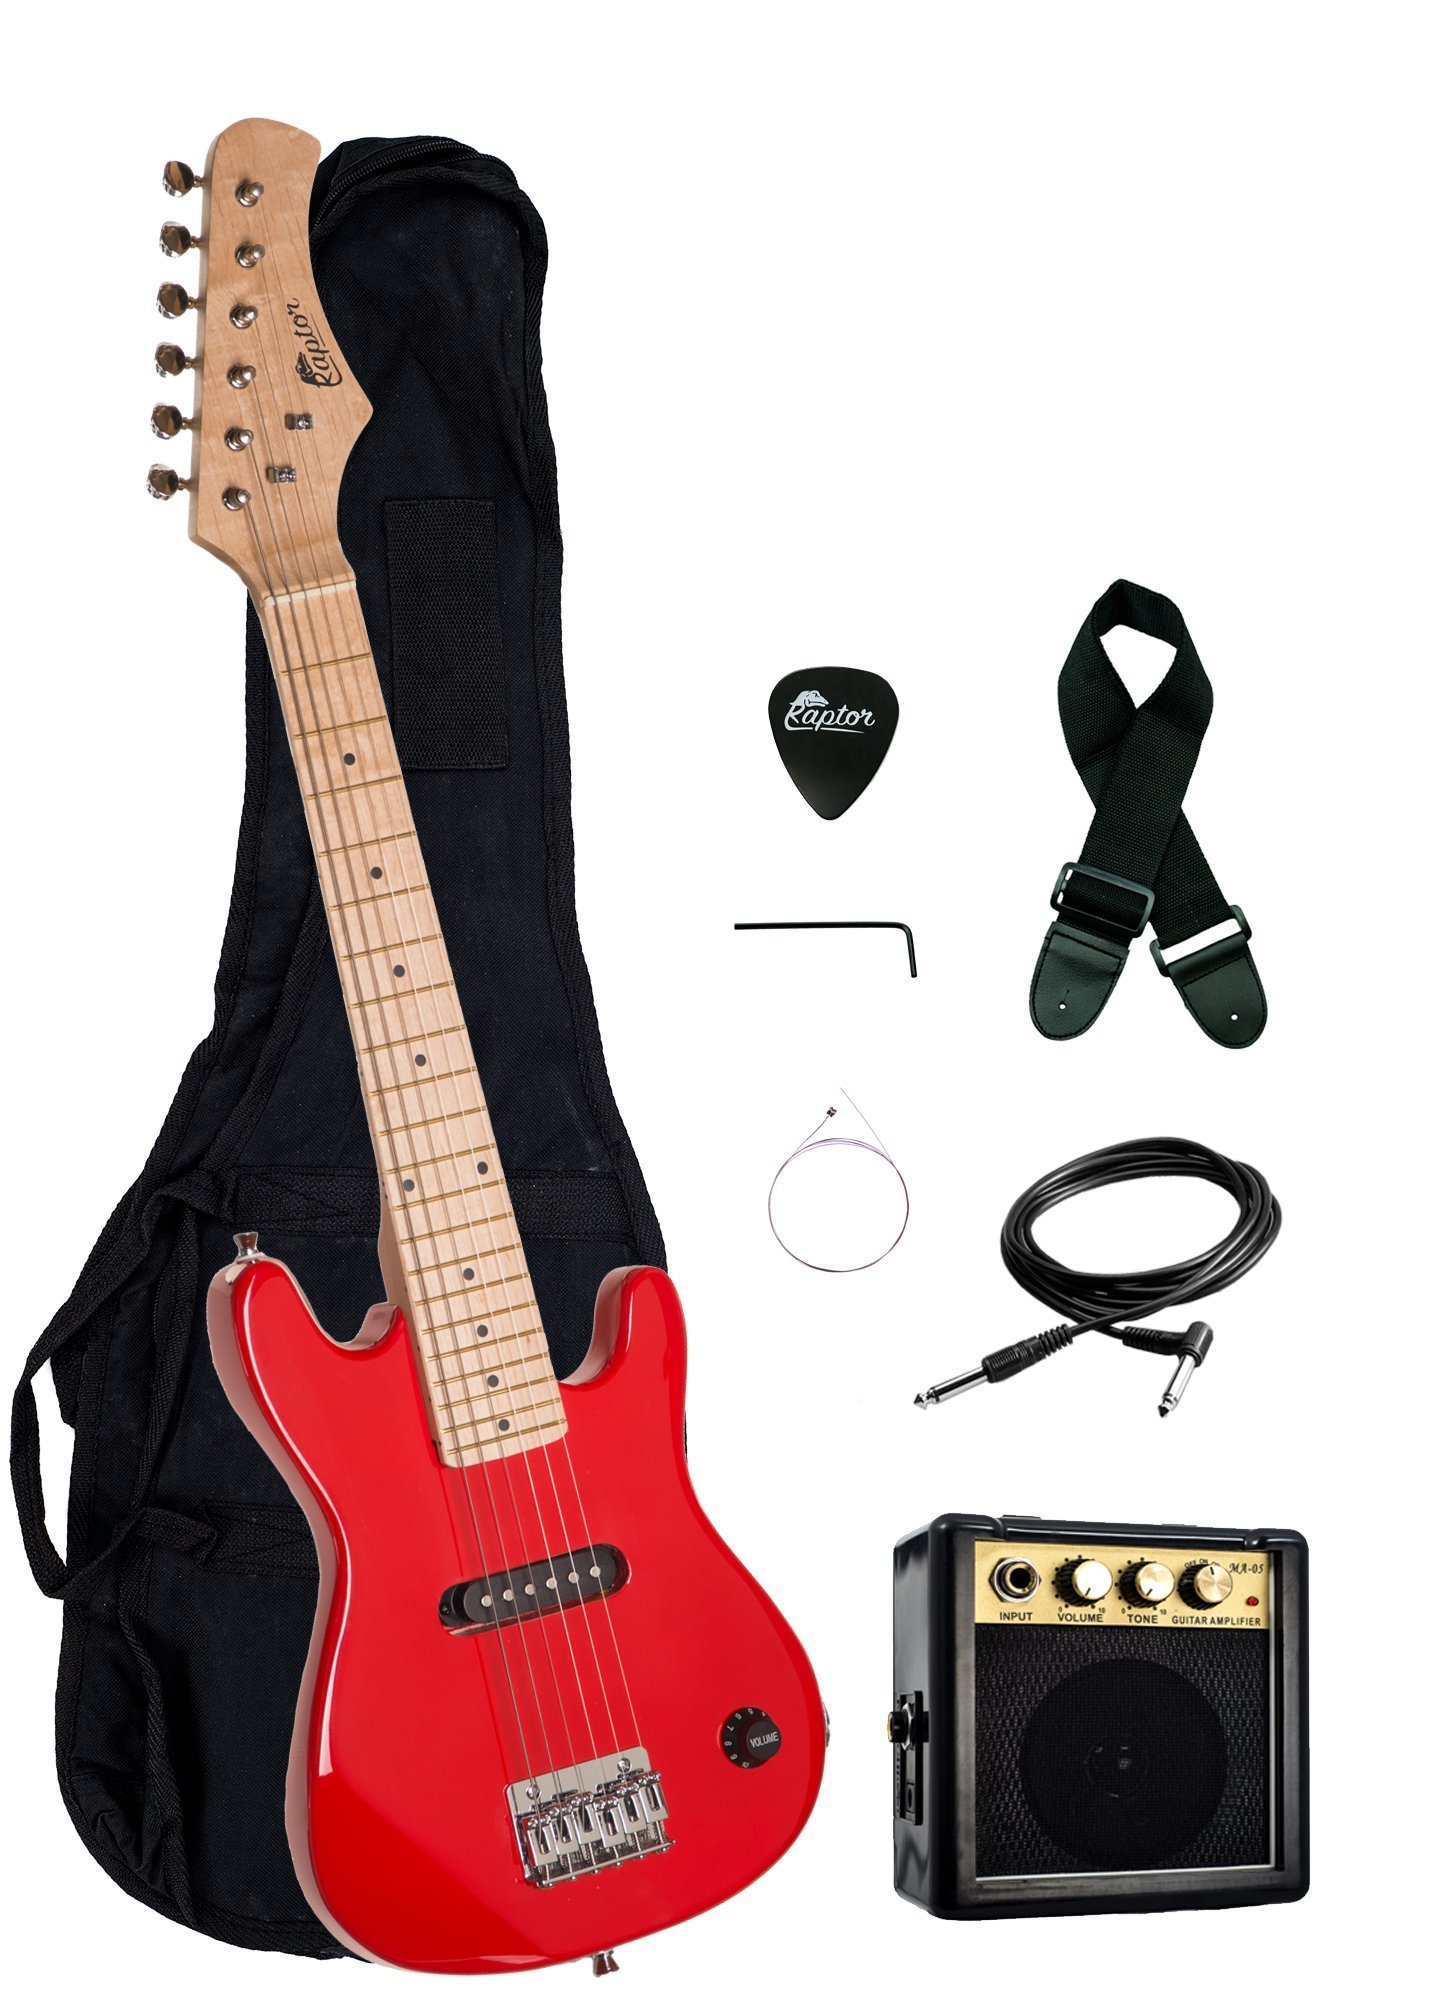 Raptor EP3-RD Kid's Starter Electric Guitar Package with Amp, Gig Bag, Strap, Cable and Pick, Red